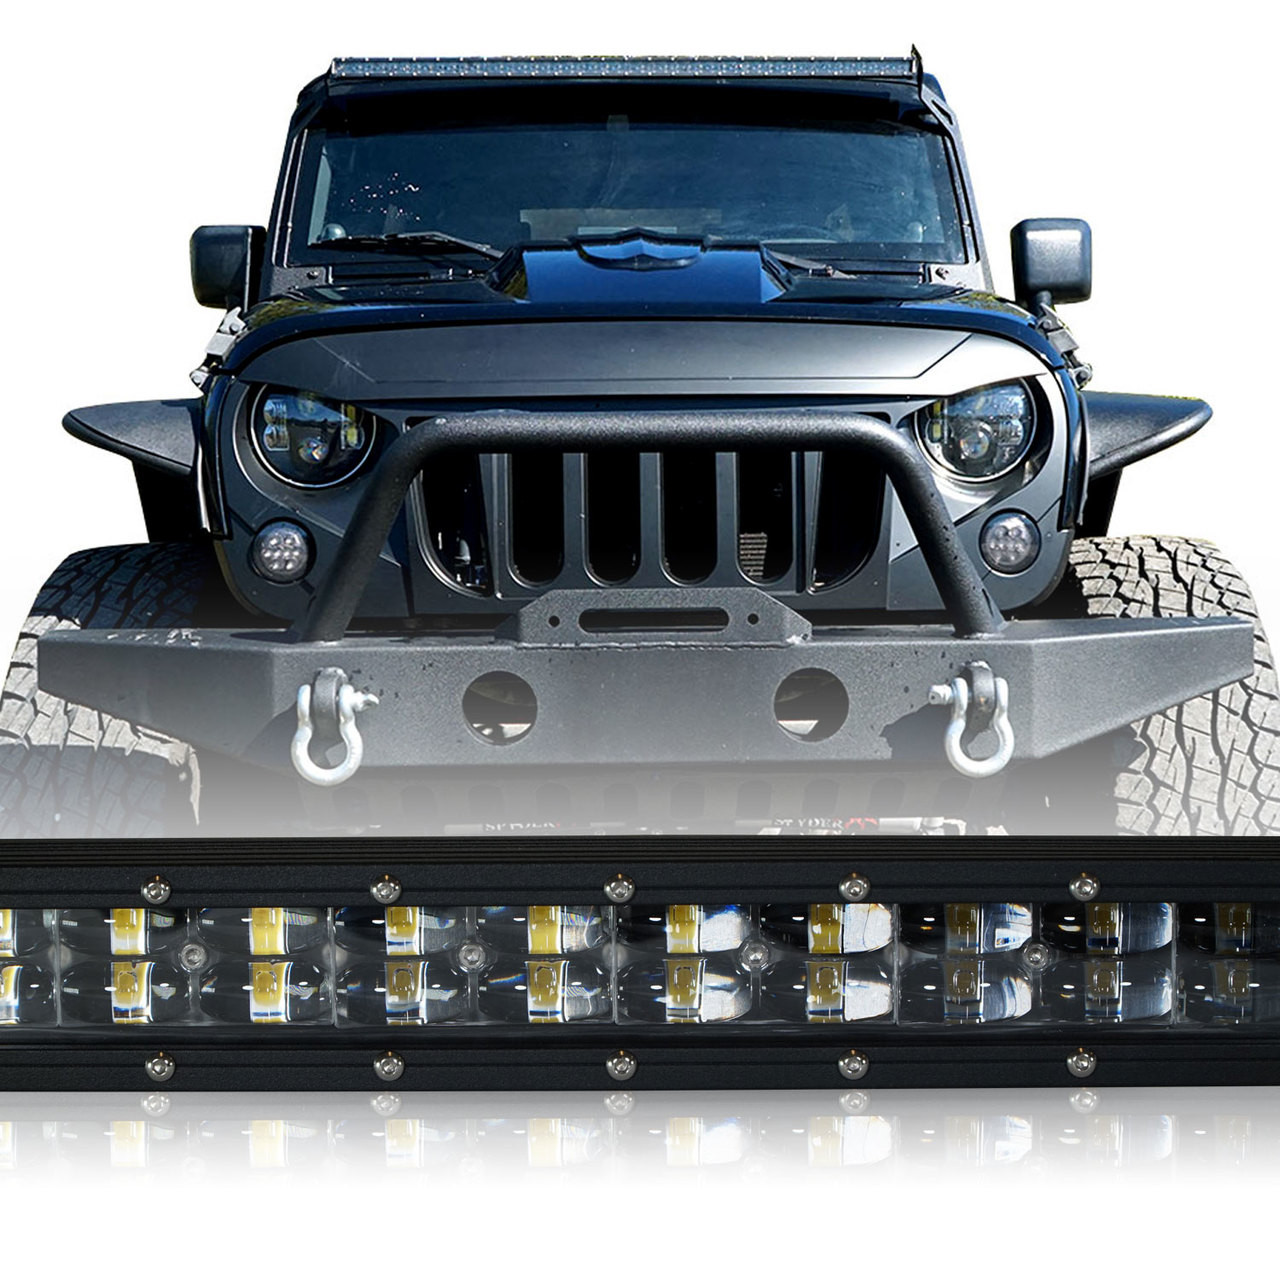 Jeep Wrangler Wiring Harness Gallery Of Cars And Accessories ... on